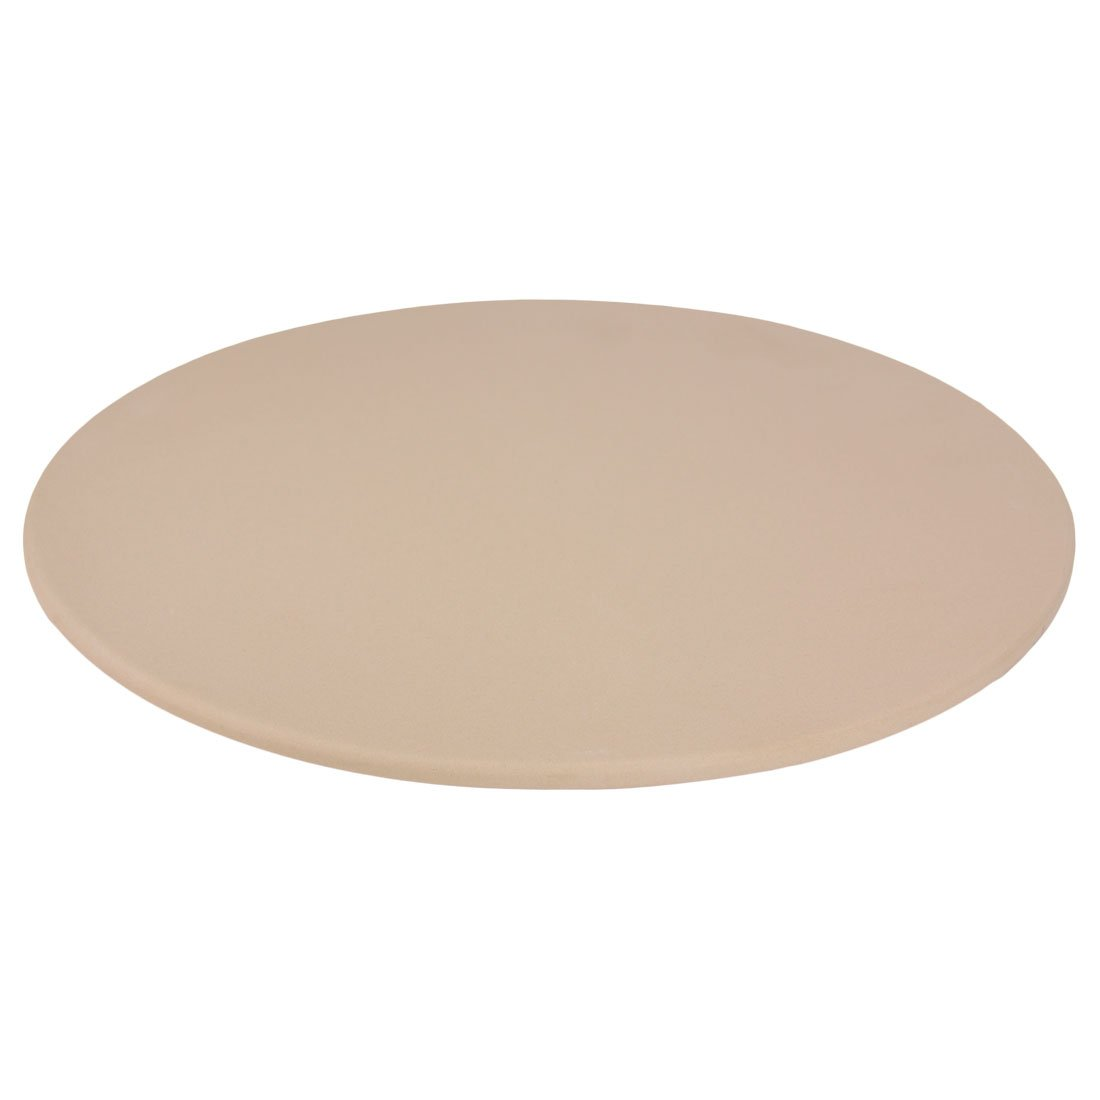 "American Bakeware 15"" Round Pizza Stone - Non Stick Ceramic Stoneware - Heat Resistant to 400 °F - No Metal, Lead, or other Harmful Materials - Safe for Ovens, Microwaves, Dishwasher, Made in the USA"